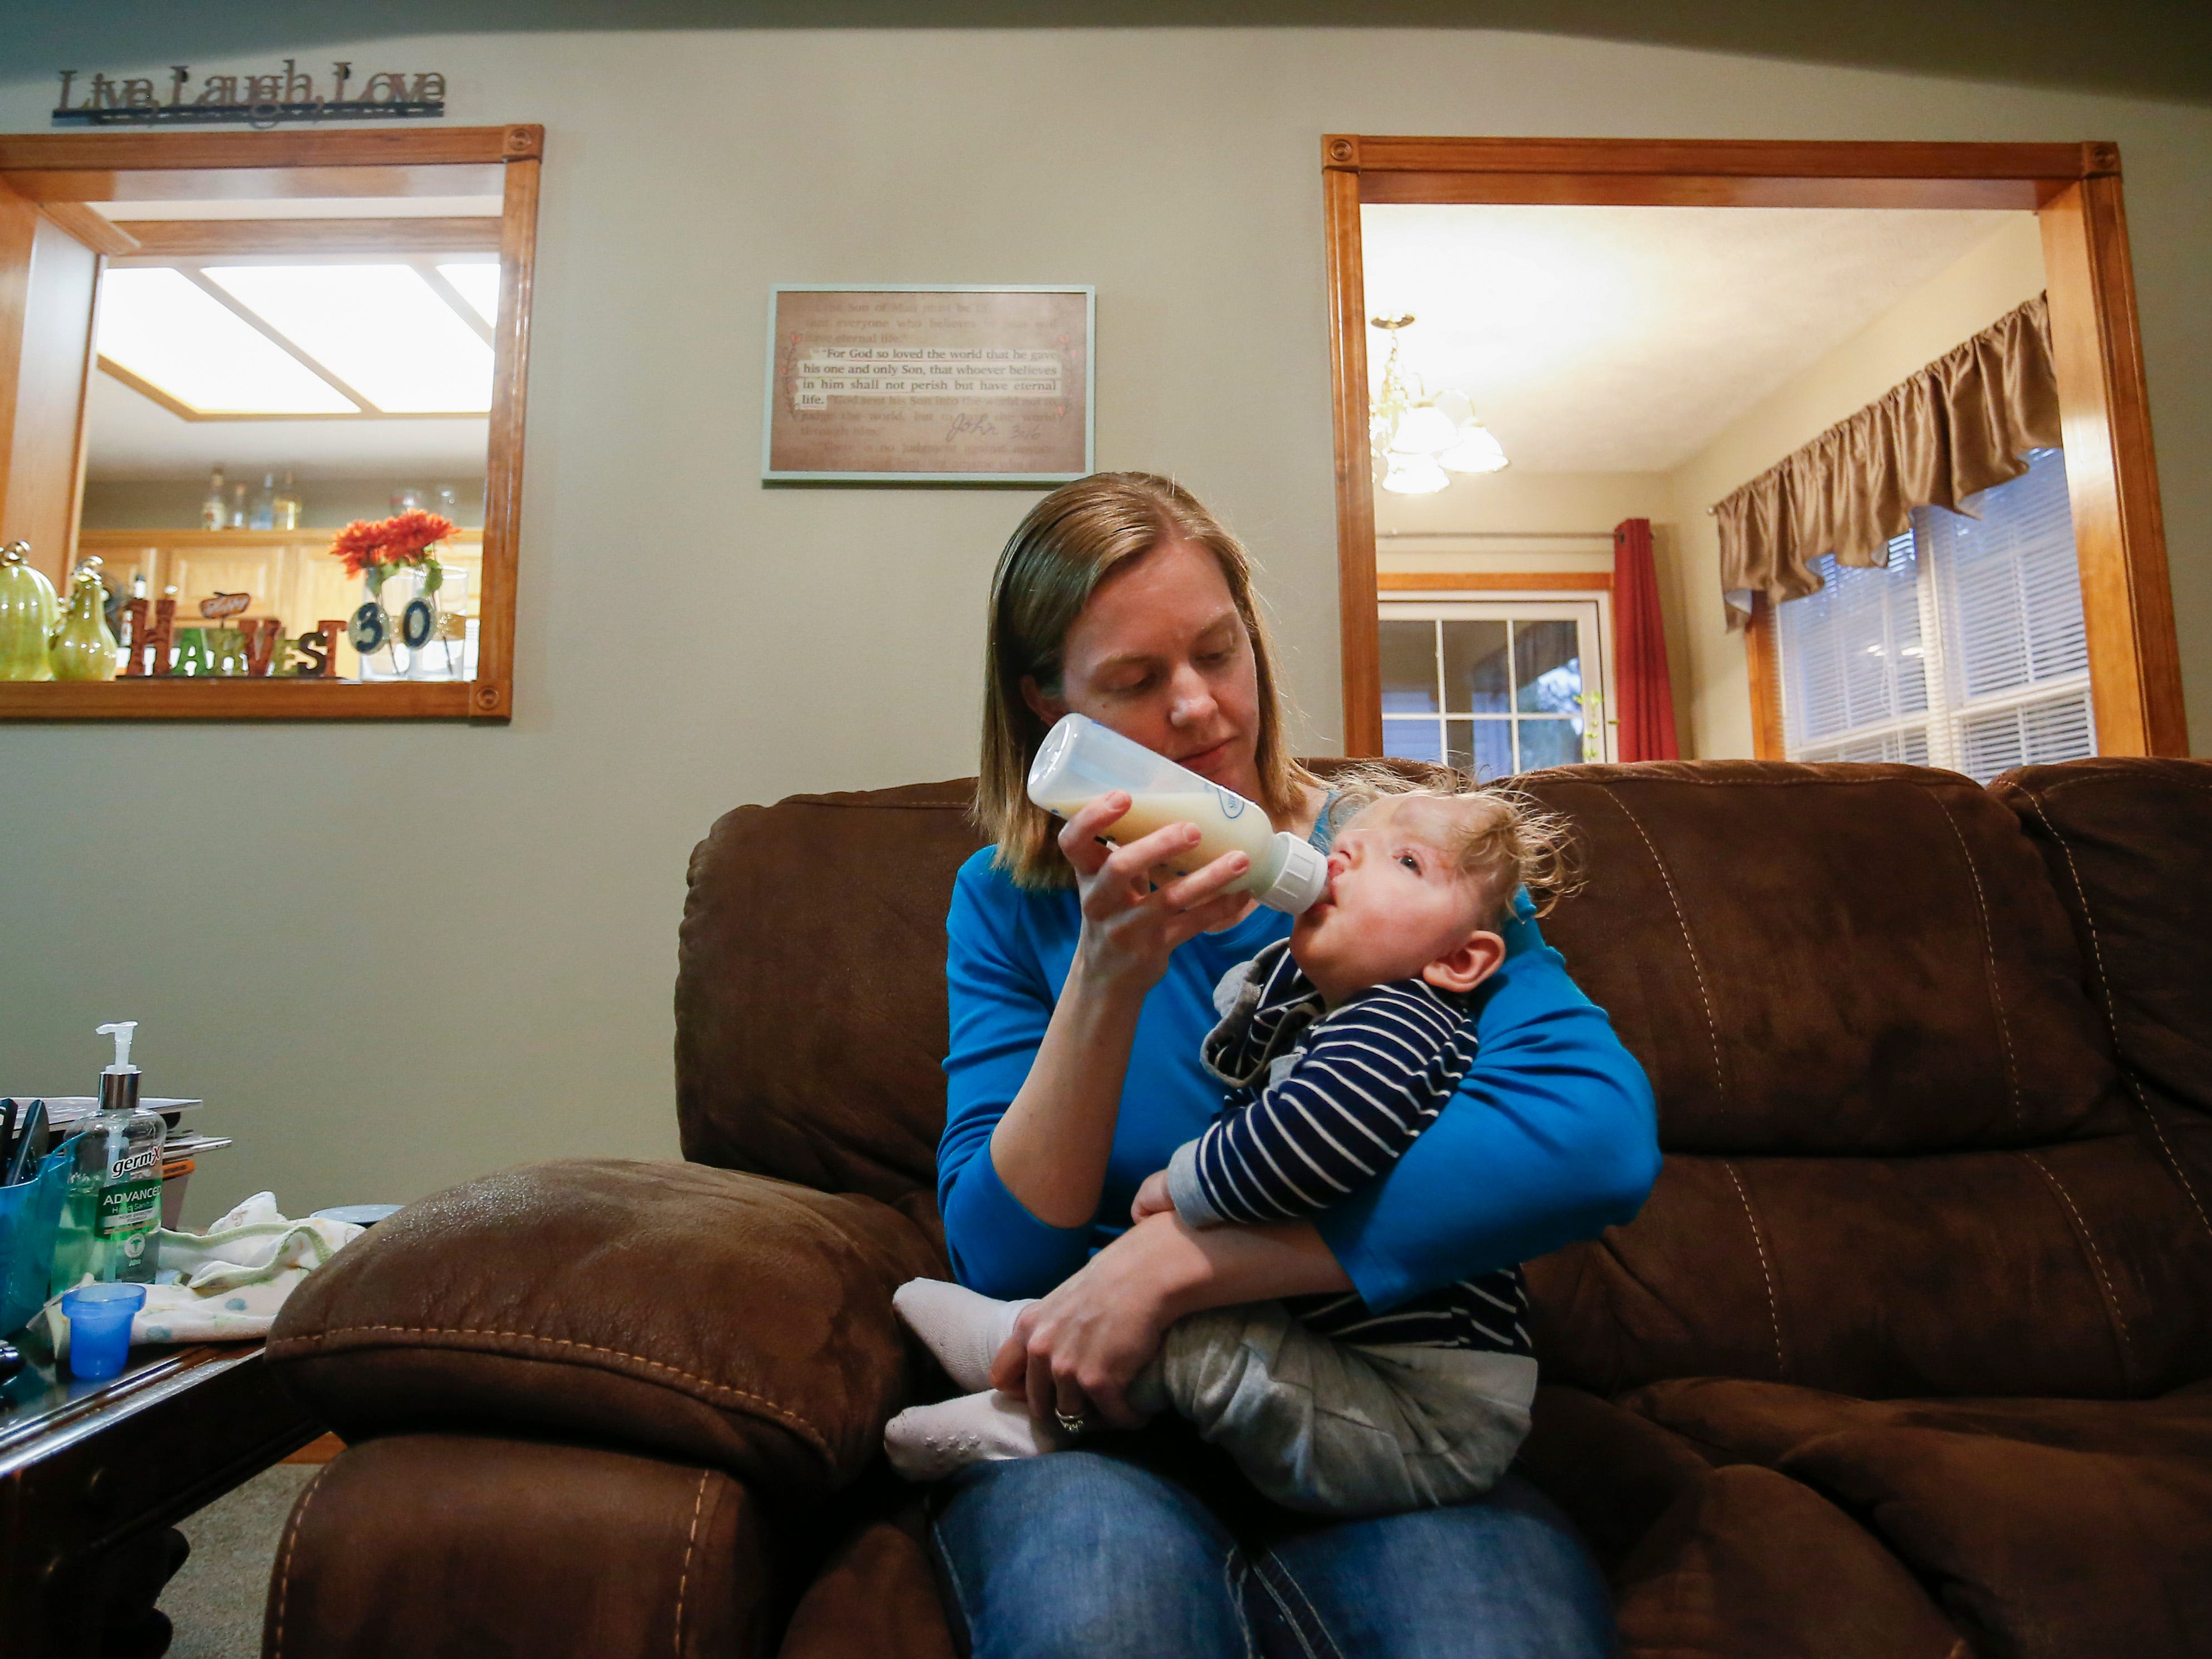 Jessica feeds her one-year-old son Owen at their home on Thursday, October 11, 2018. Owen was born missing the top part of his skull and was not expected to survive childbirth.